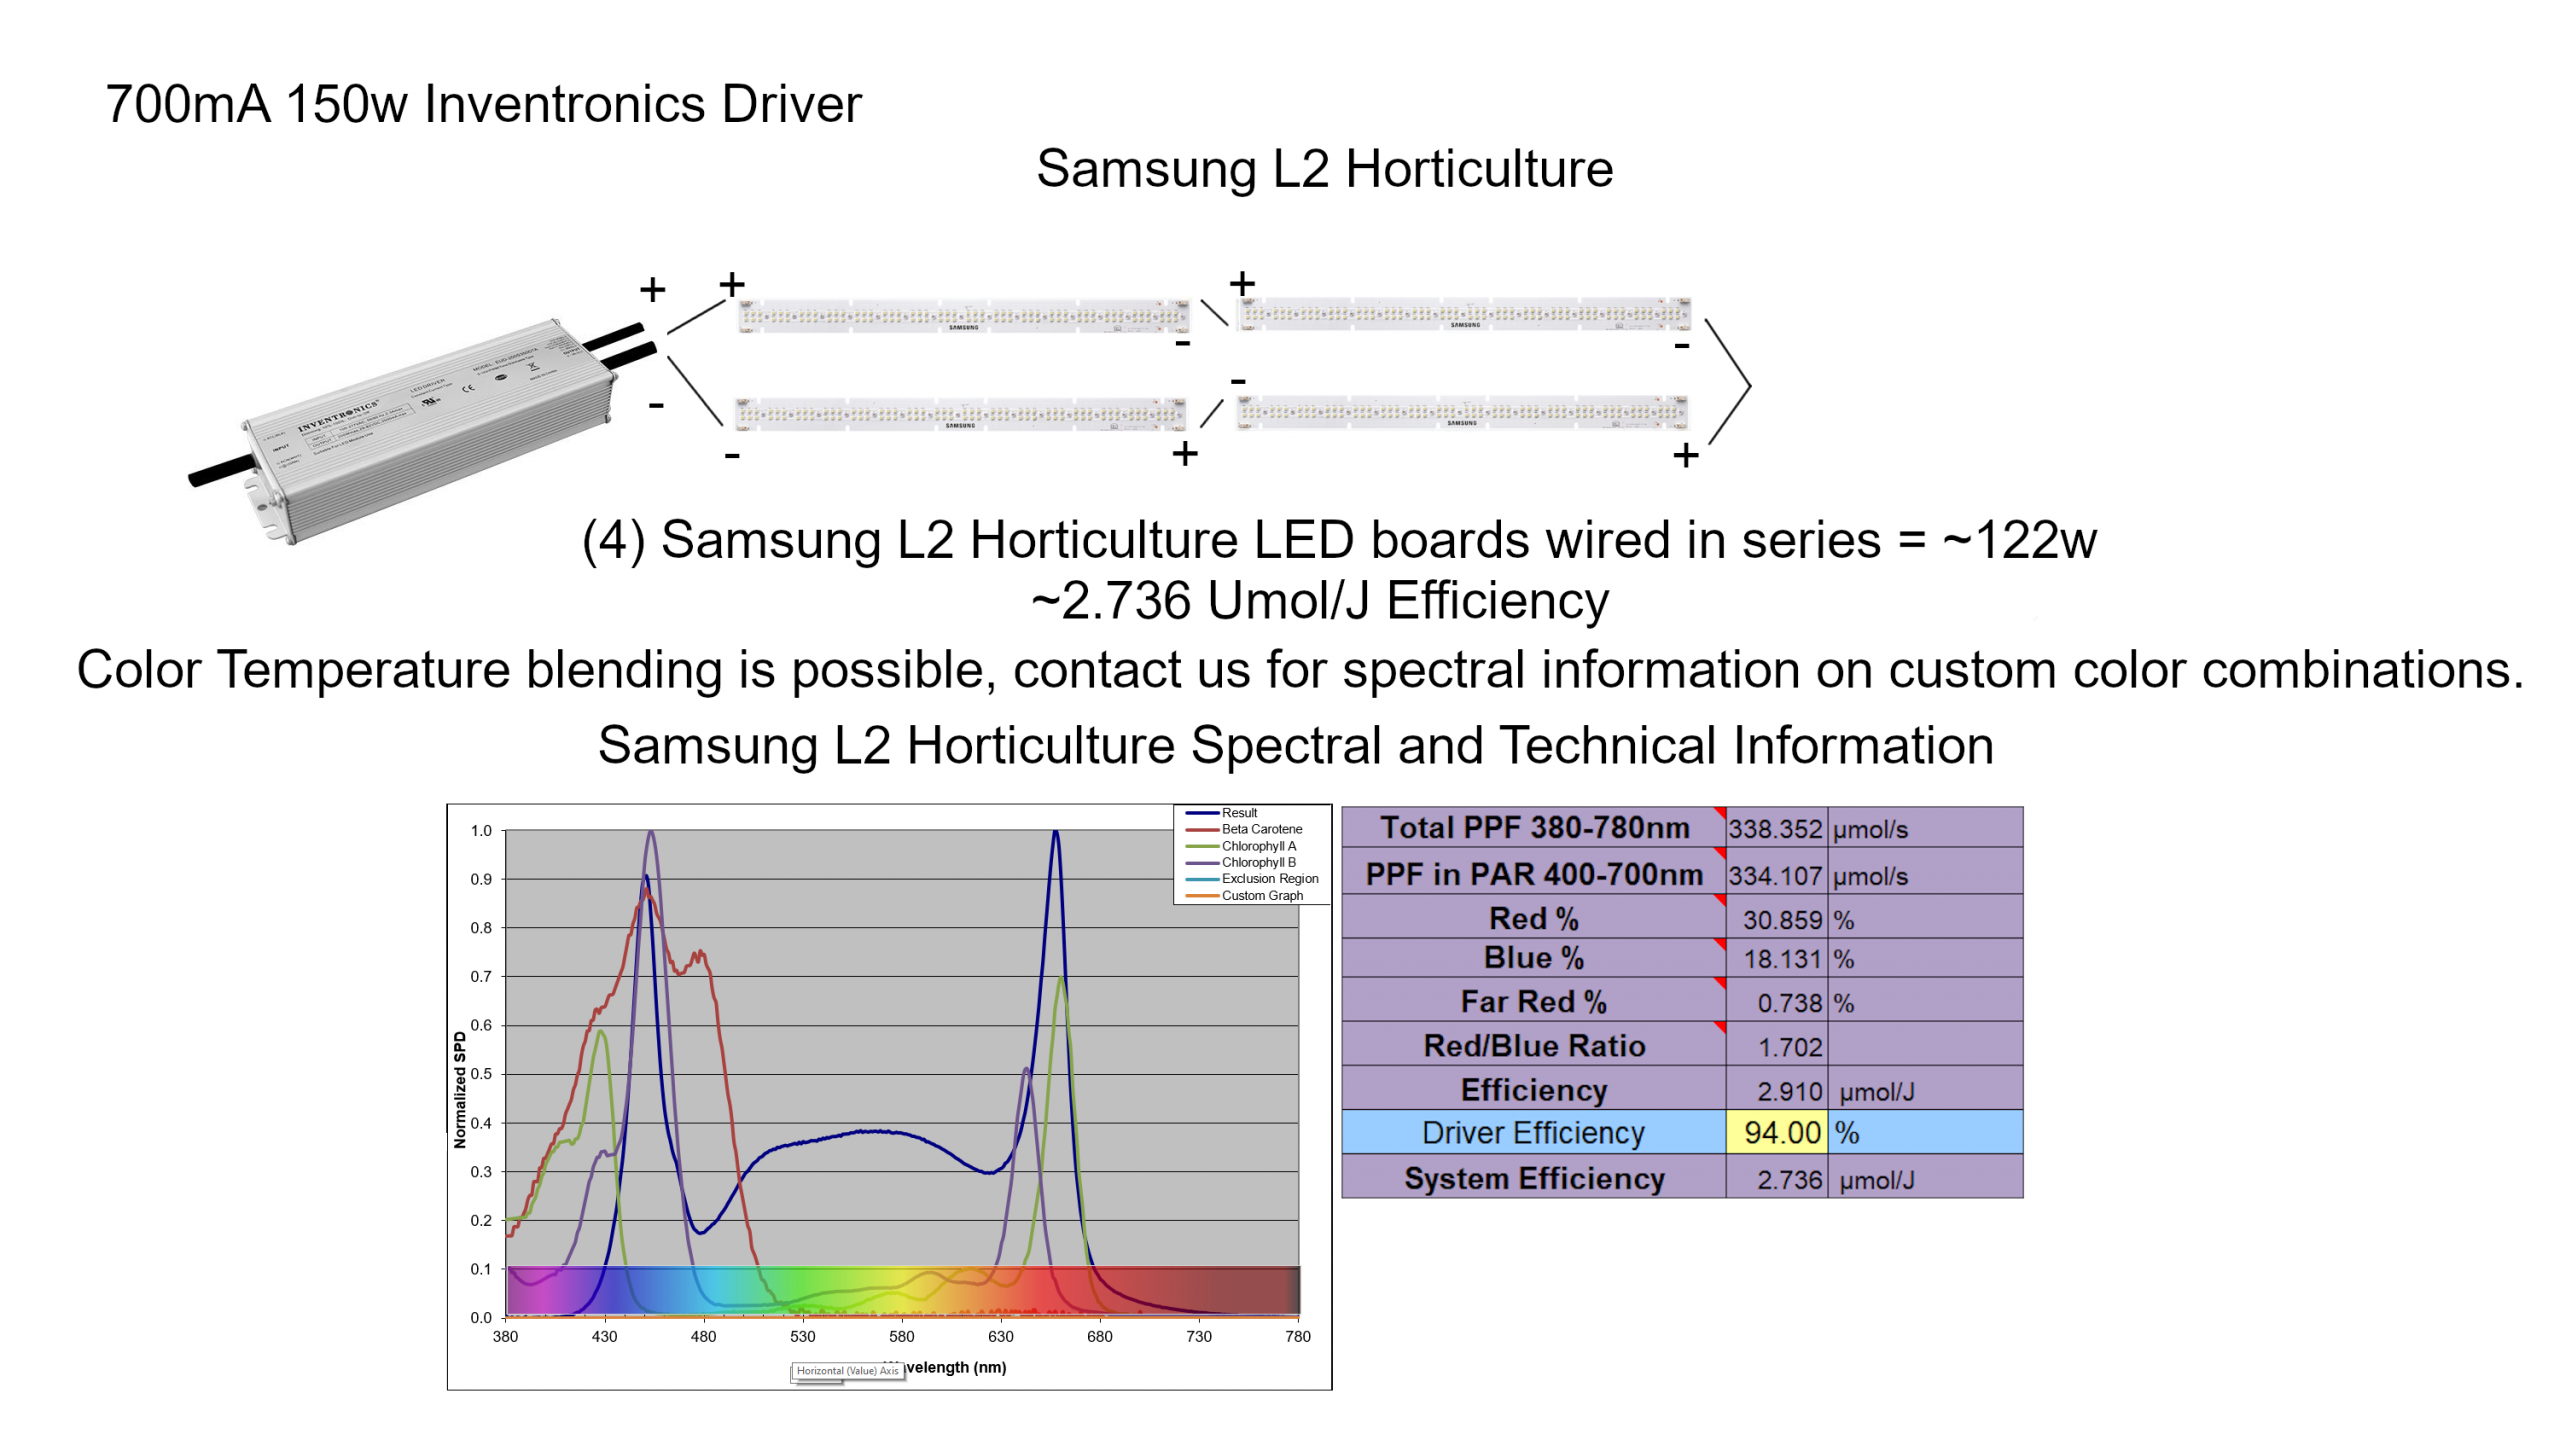 Samsung L2 Horticulture LED Wiring Diagram 150w